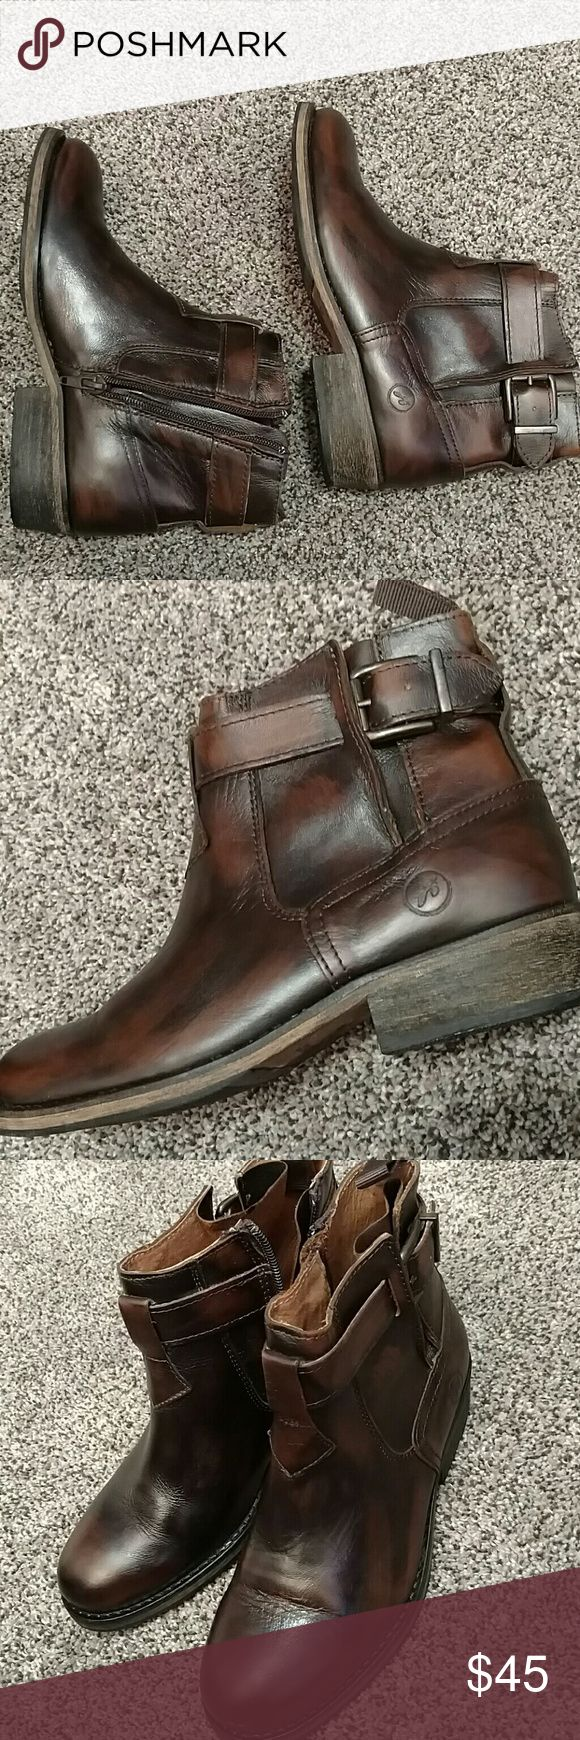 Bronx brand. Leather ankle Boots with zippers Brown black leather. Very sharp looking and super high quality workmanship. Look new.Made in Portugal Bronx  Shoes Ankle Boots & Booties